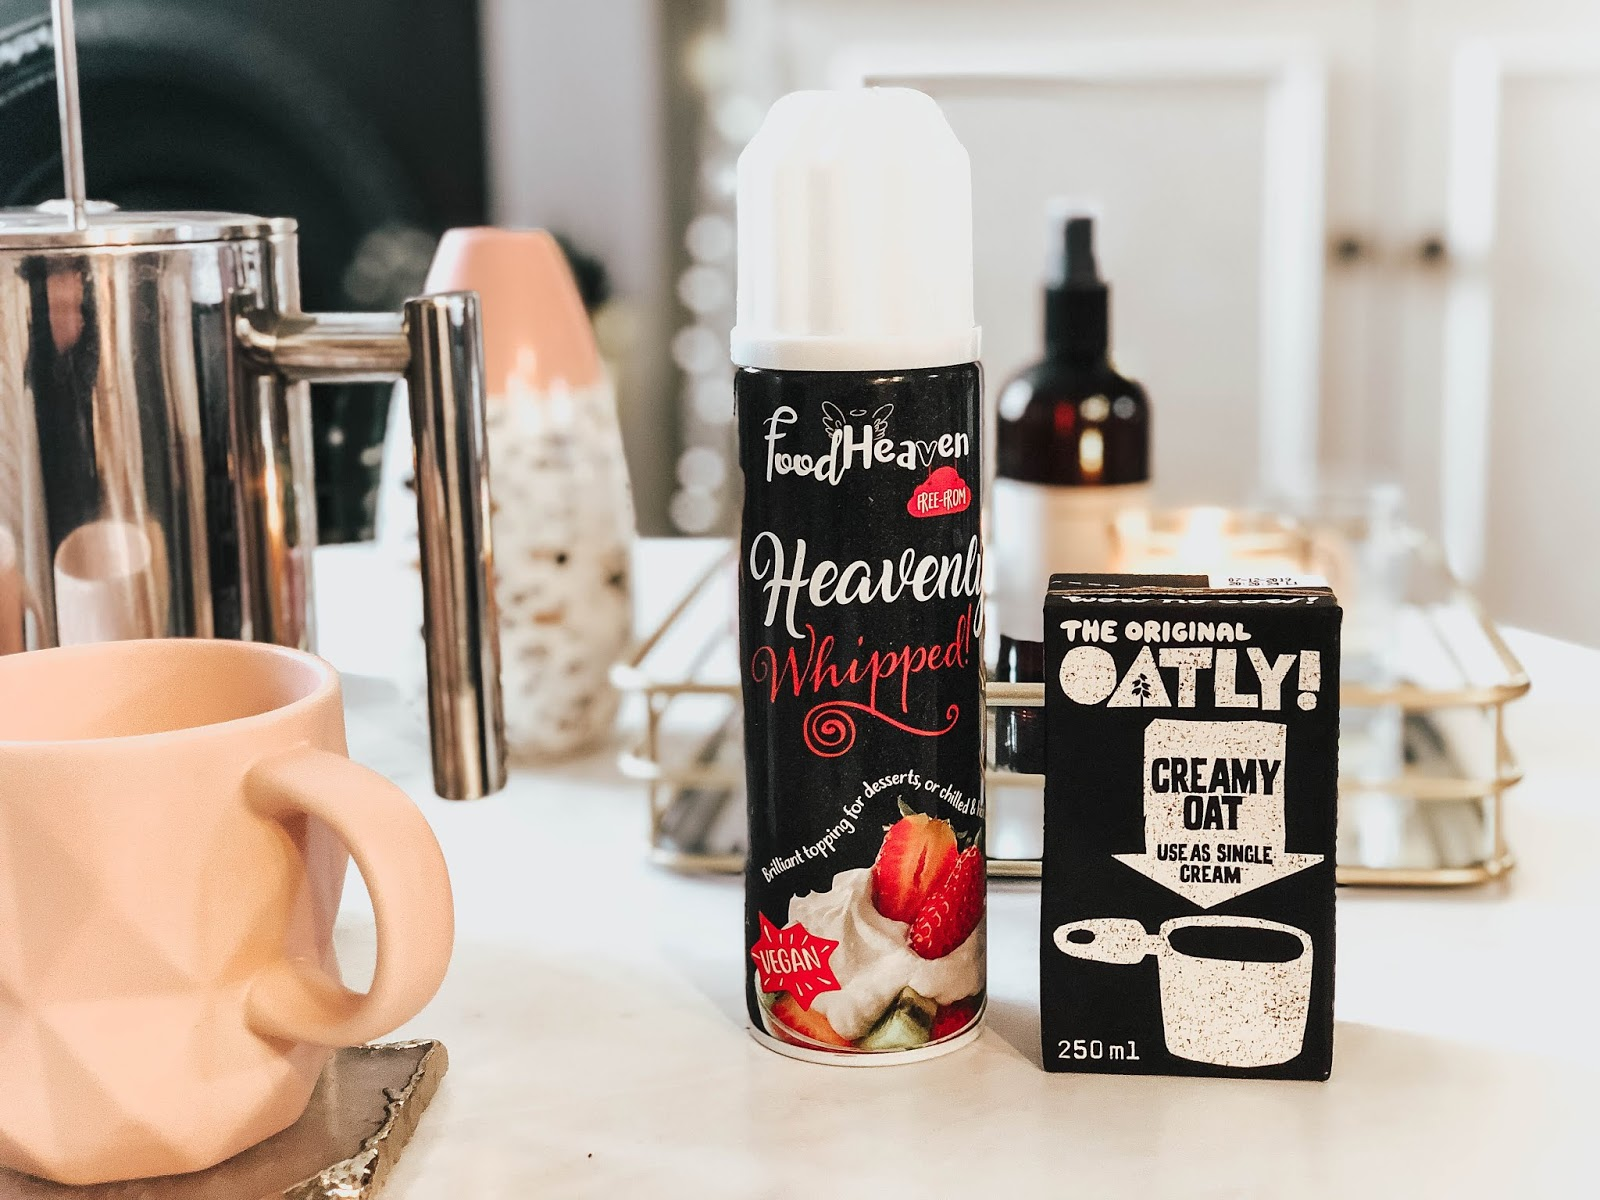 vegan oatly cream for coffee